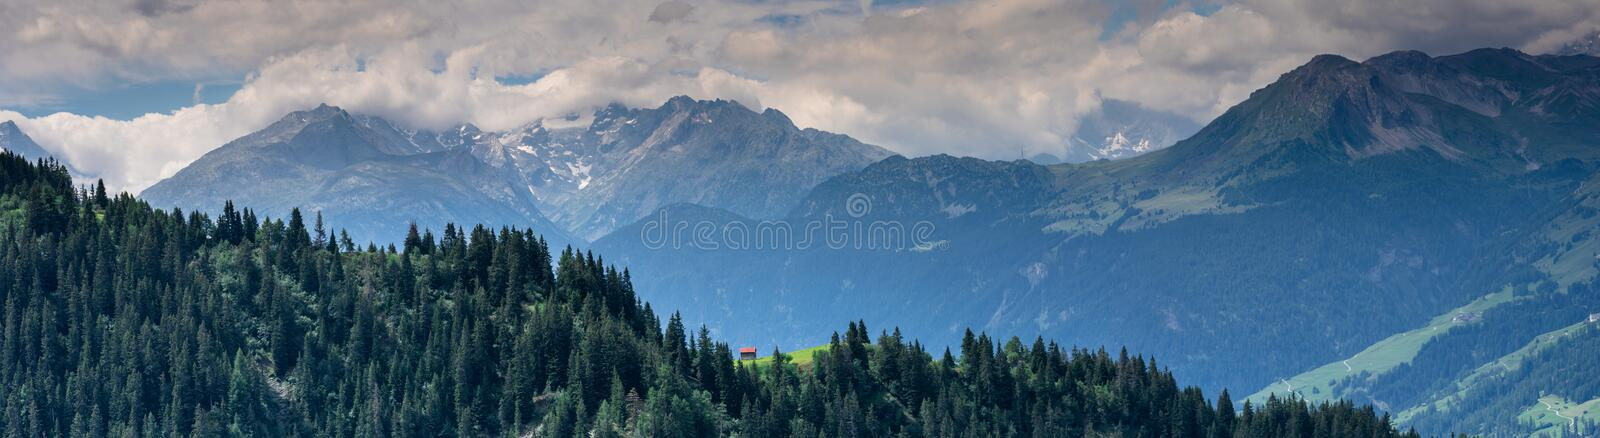 Panorama view of mountains and valley in Switzerland with red cabin royalty free stock image